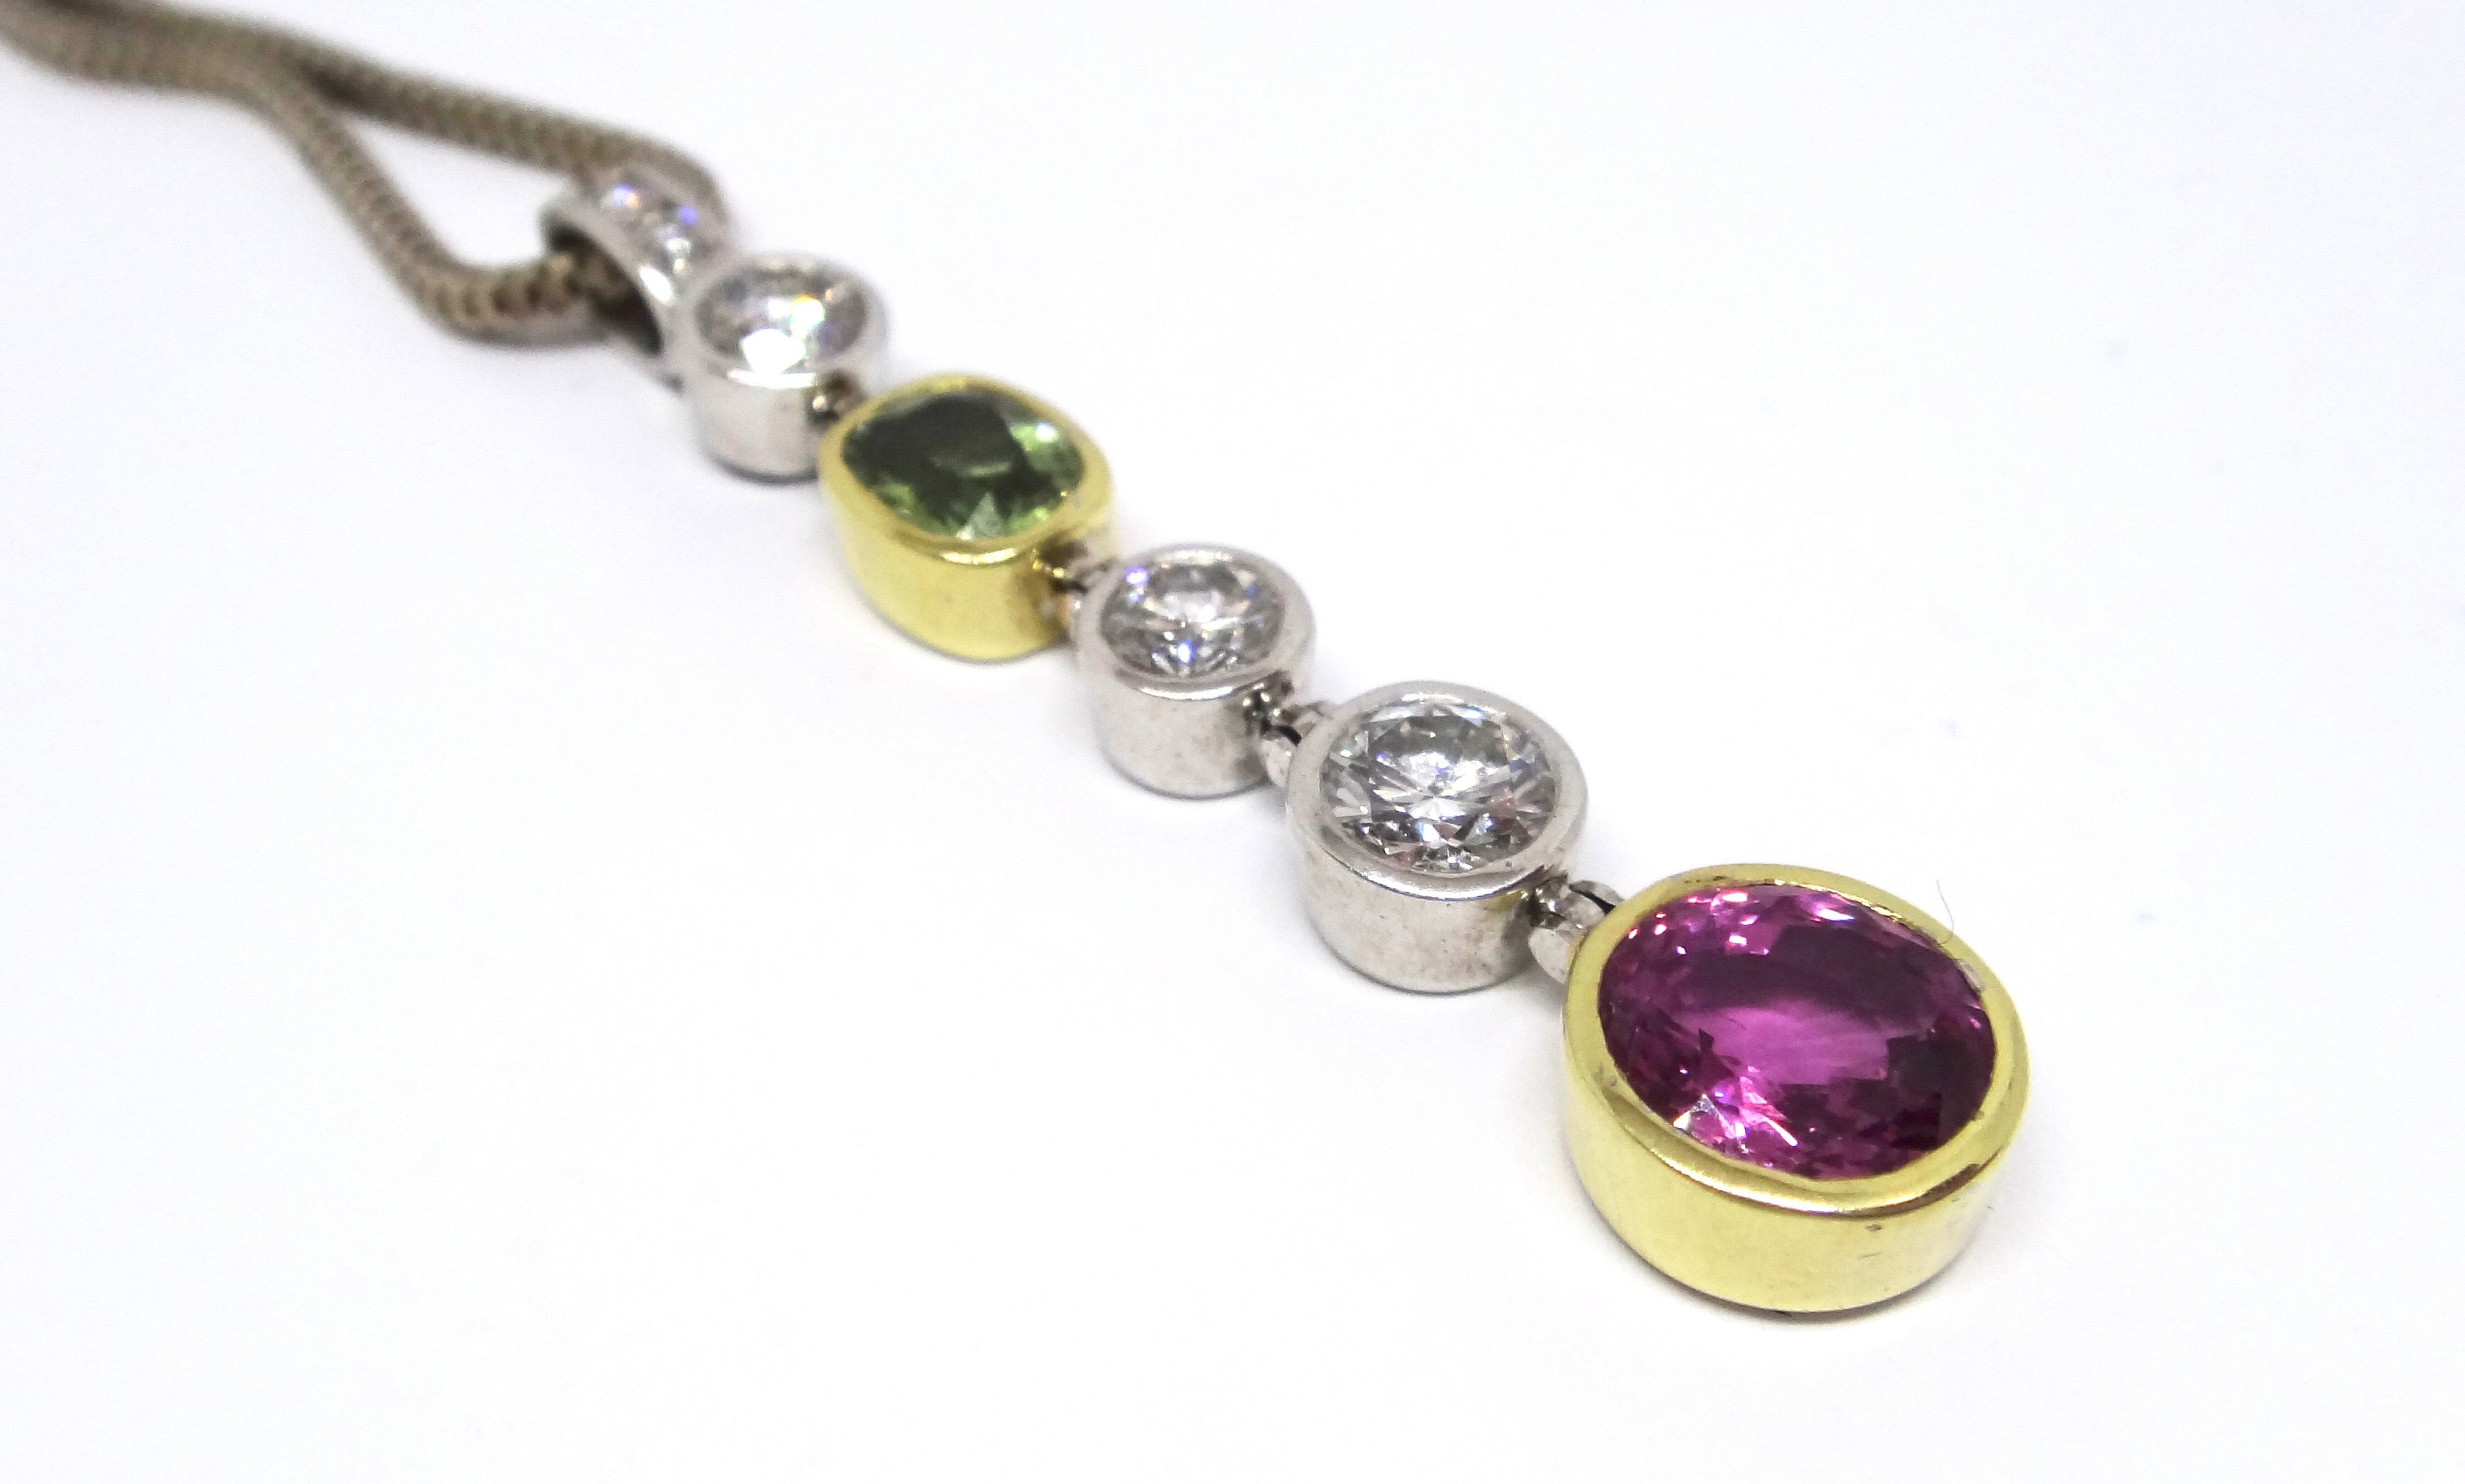 18CT GOLD, Brilliant Cut DIAMOND, Green & Pink Sapphire Pendant Necklace VAL $24,650